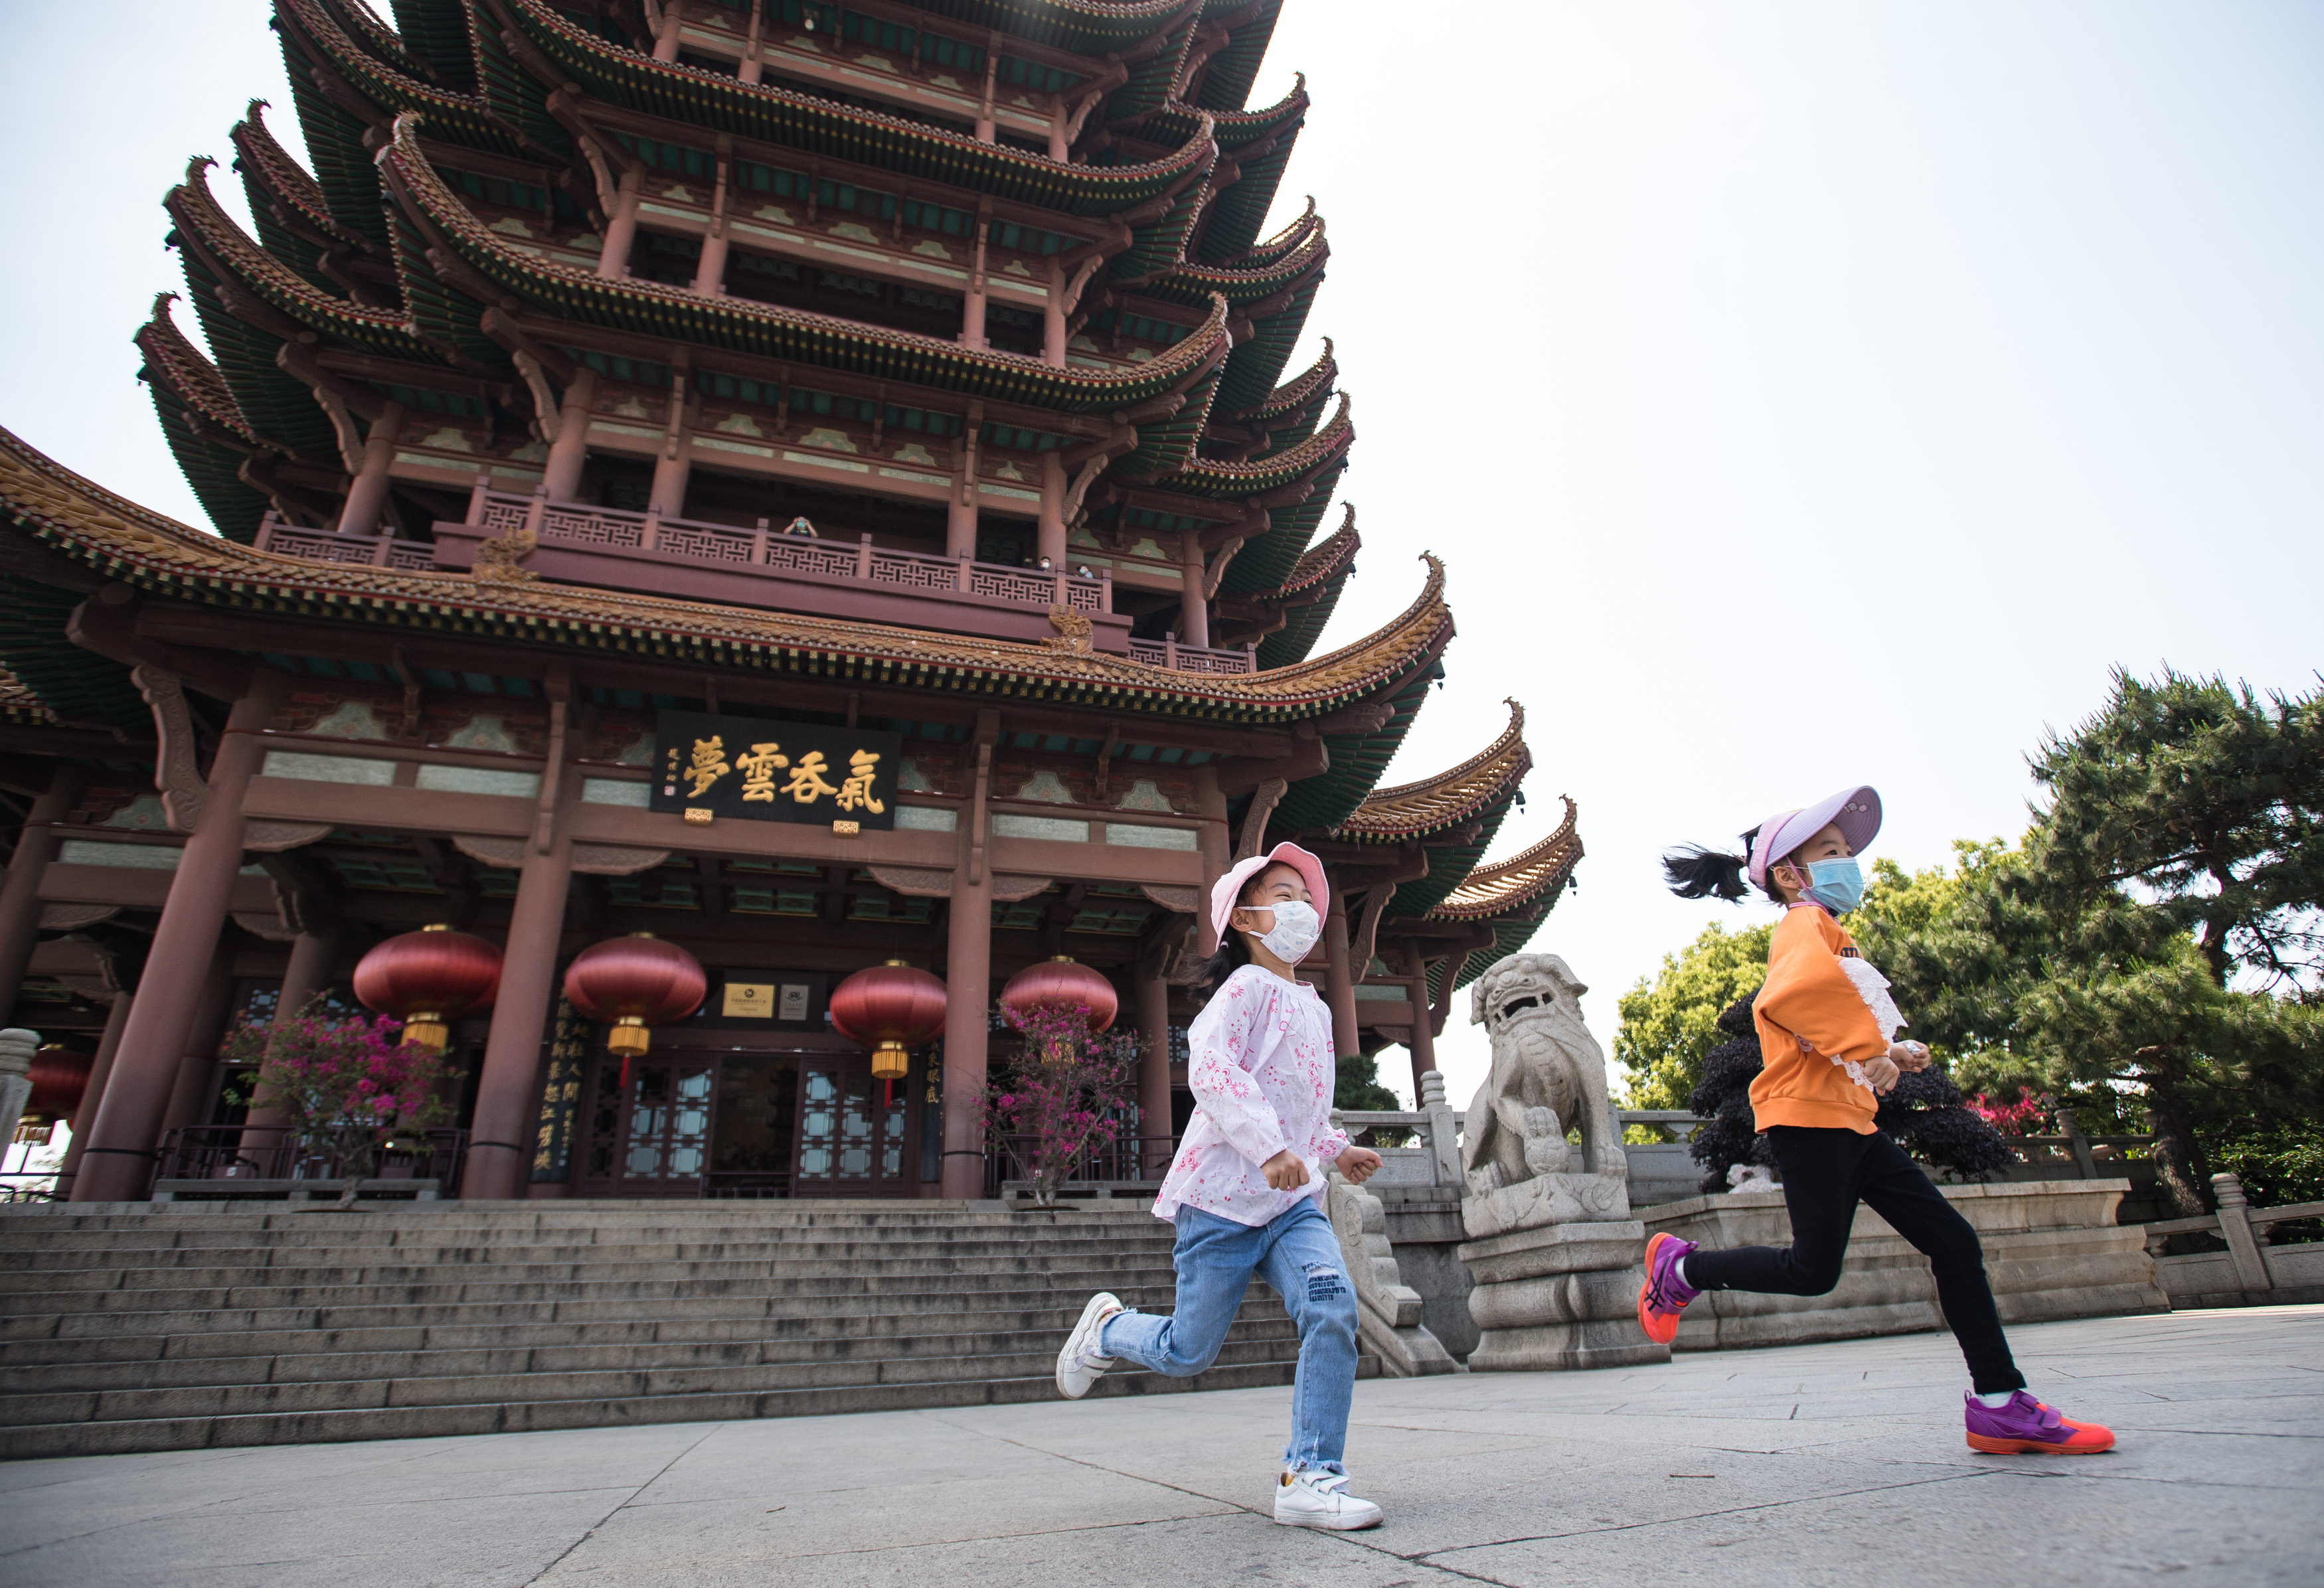 China's domestic tourism shrinks in 2020 amid COVID-19 epidemic